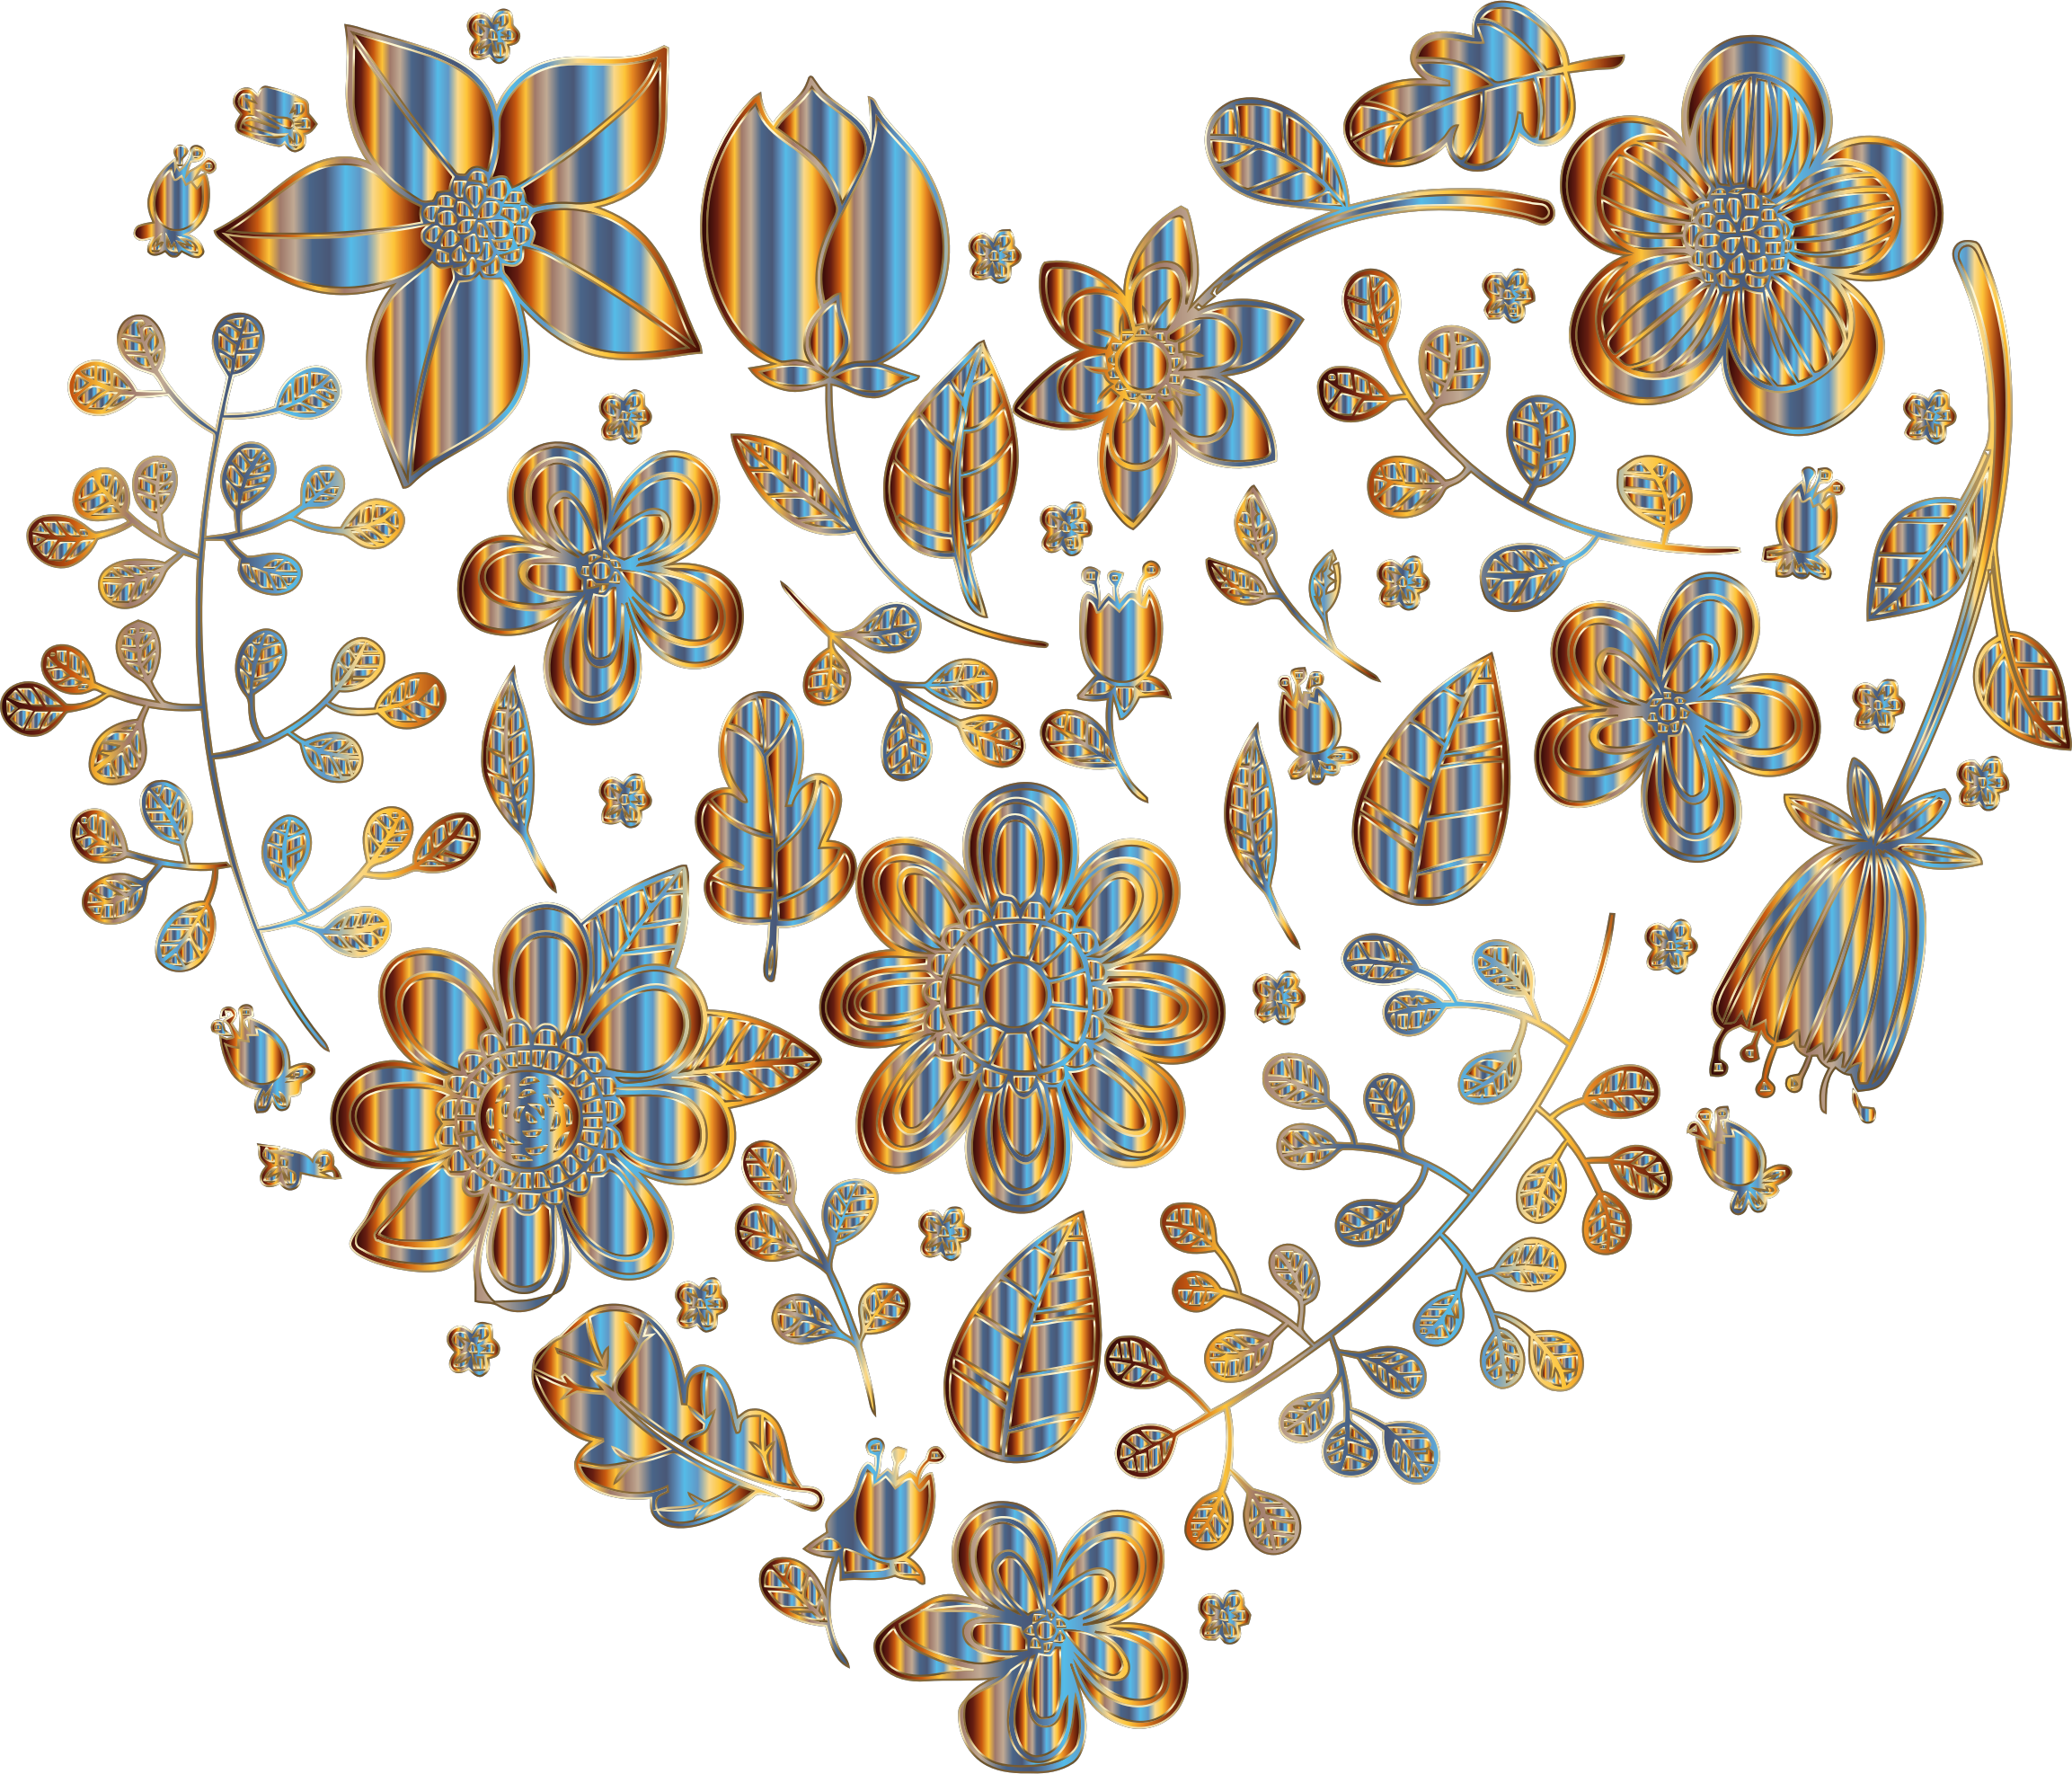 Chromatic Floral Heart 2 No Background by GDJ